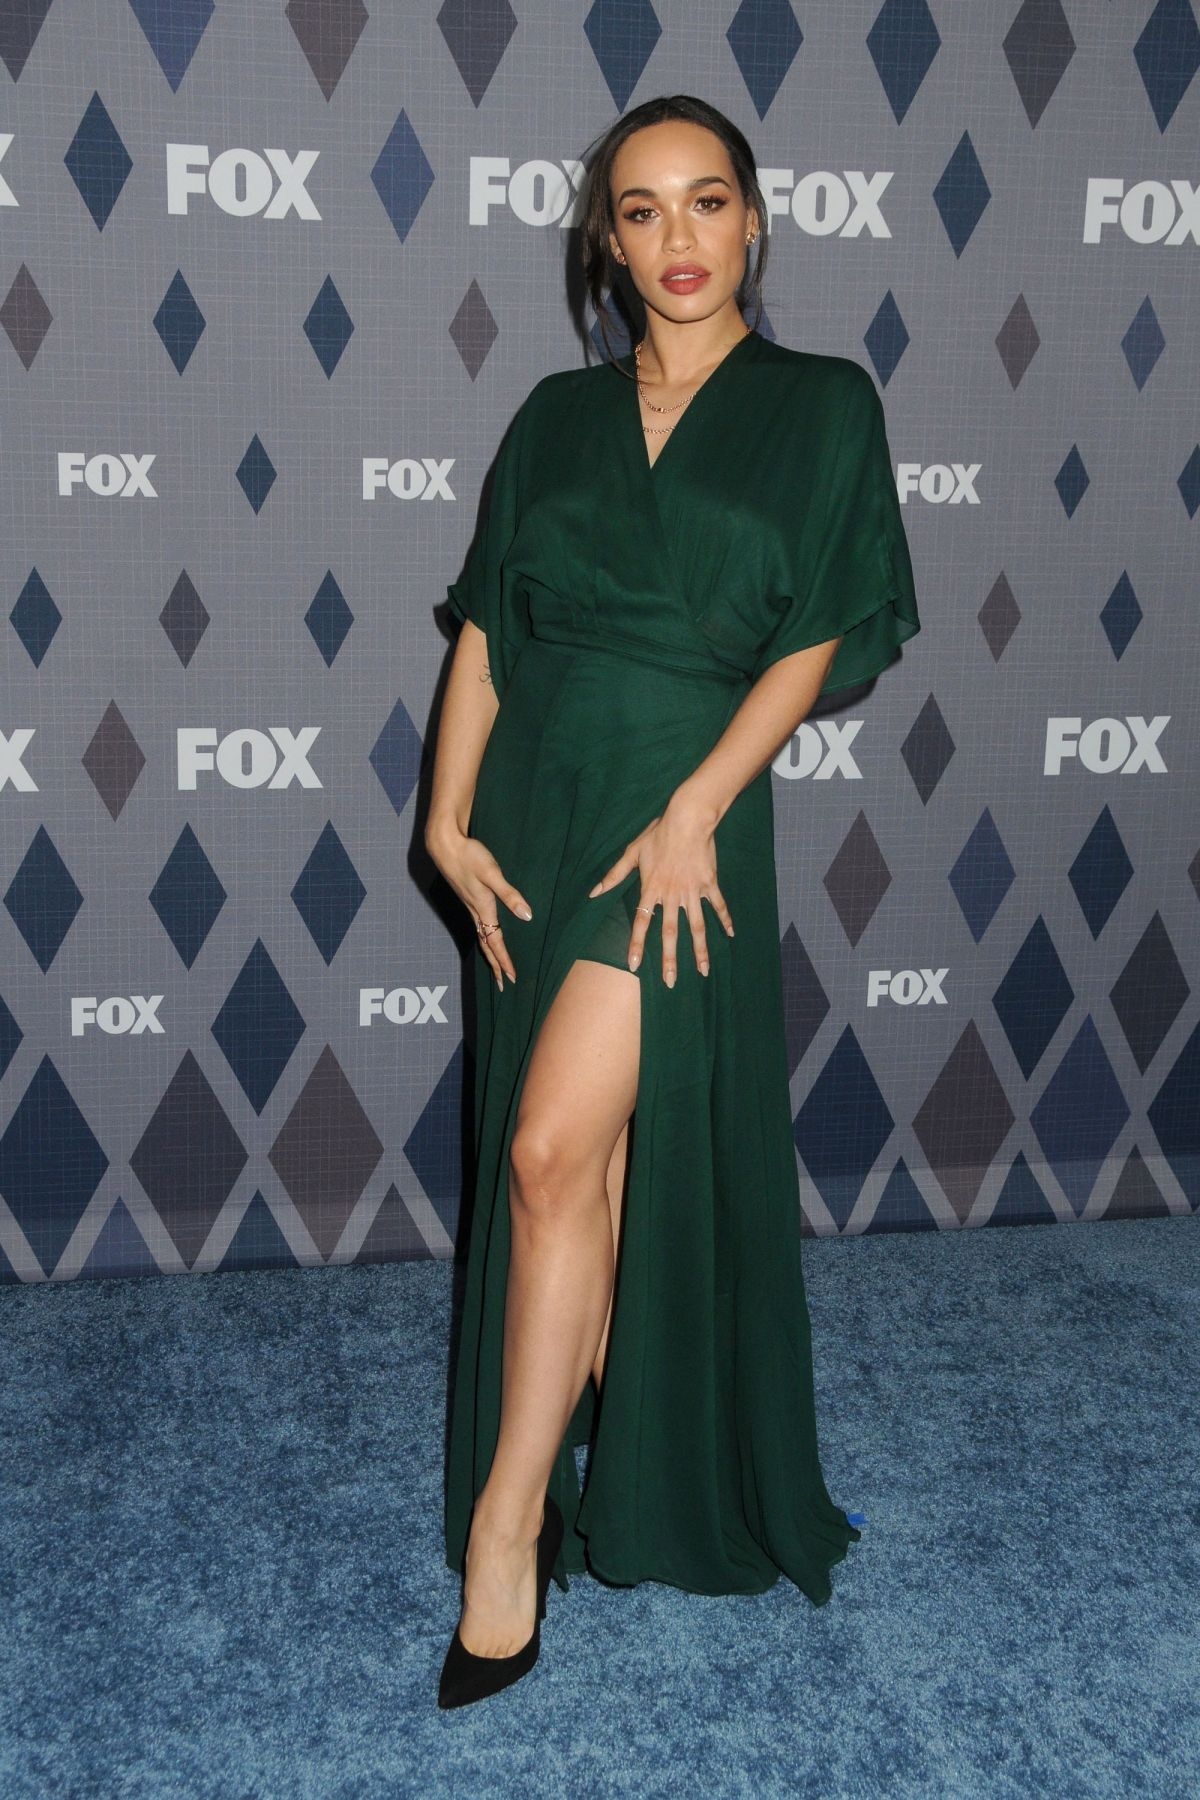 CLEOPATRA COLEMAN at Fox Winter TCA 2016 All-star Party in Pasadena 01/15/2016